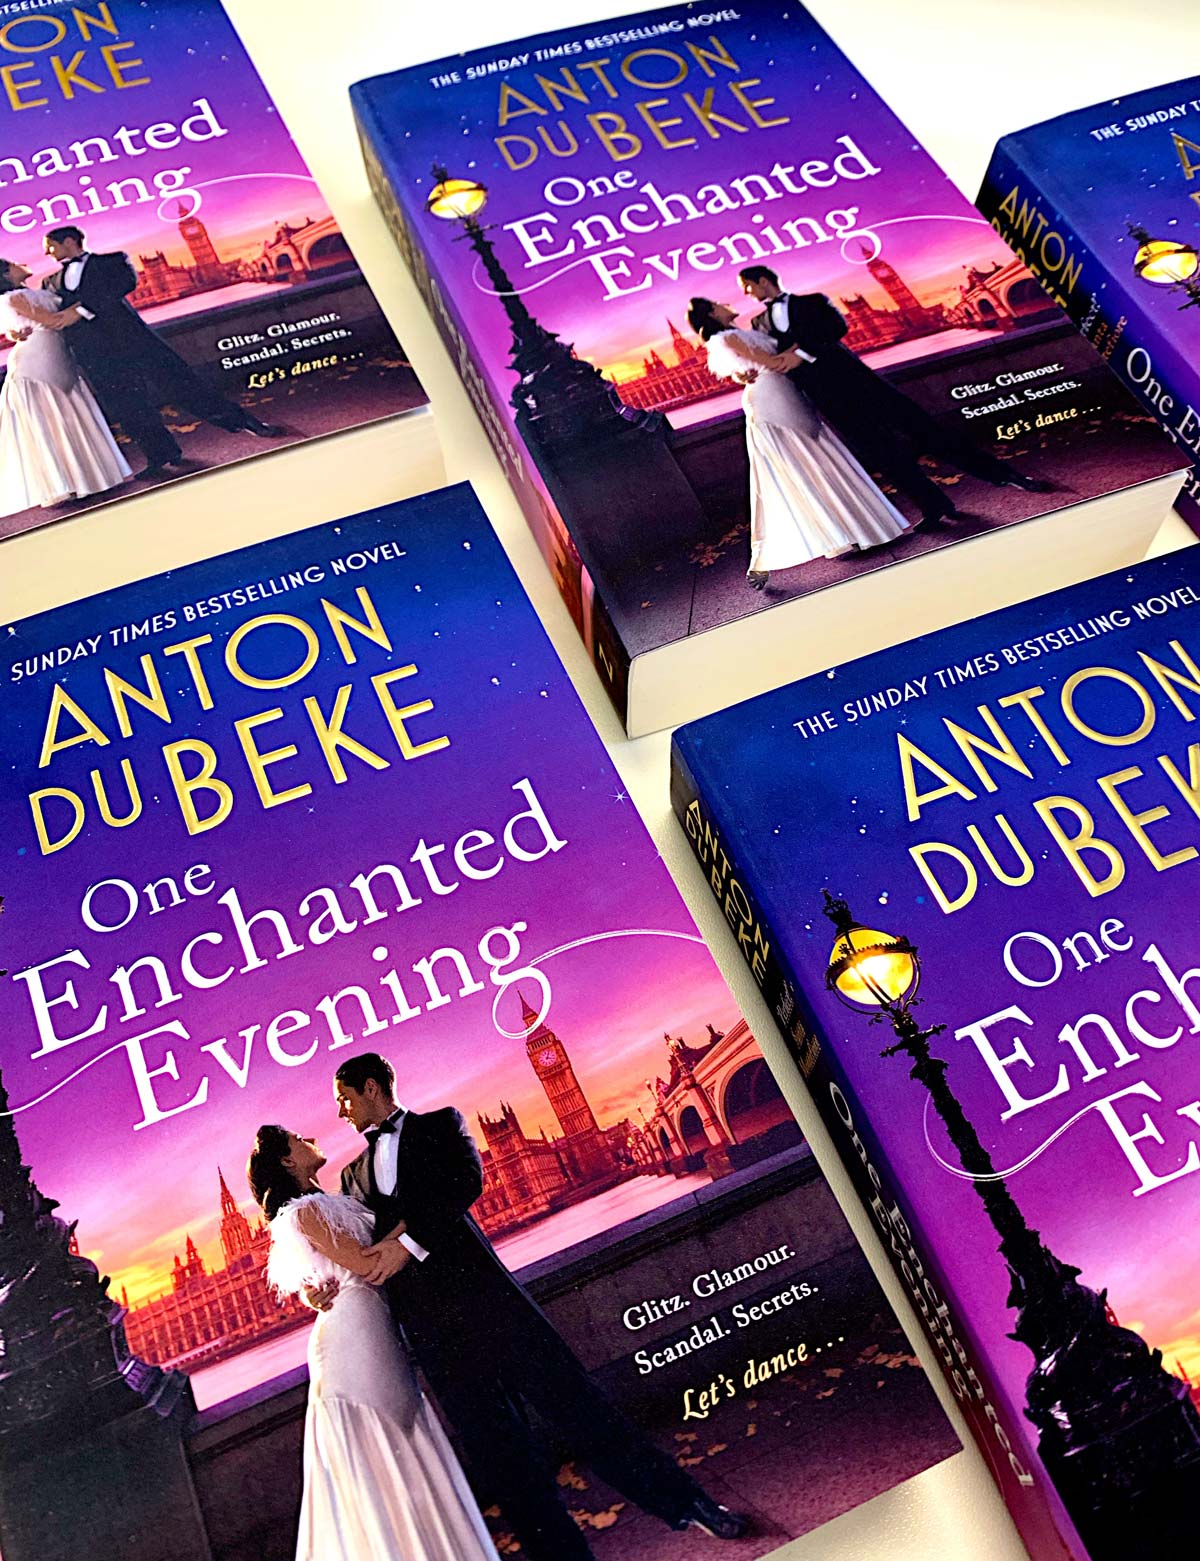 One Enchanted Evening - available in Paperback